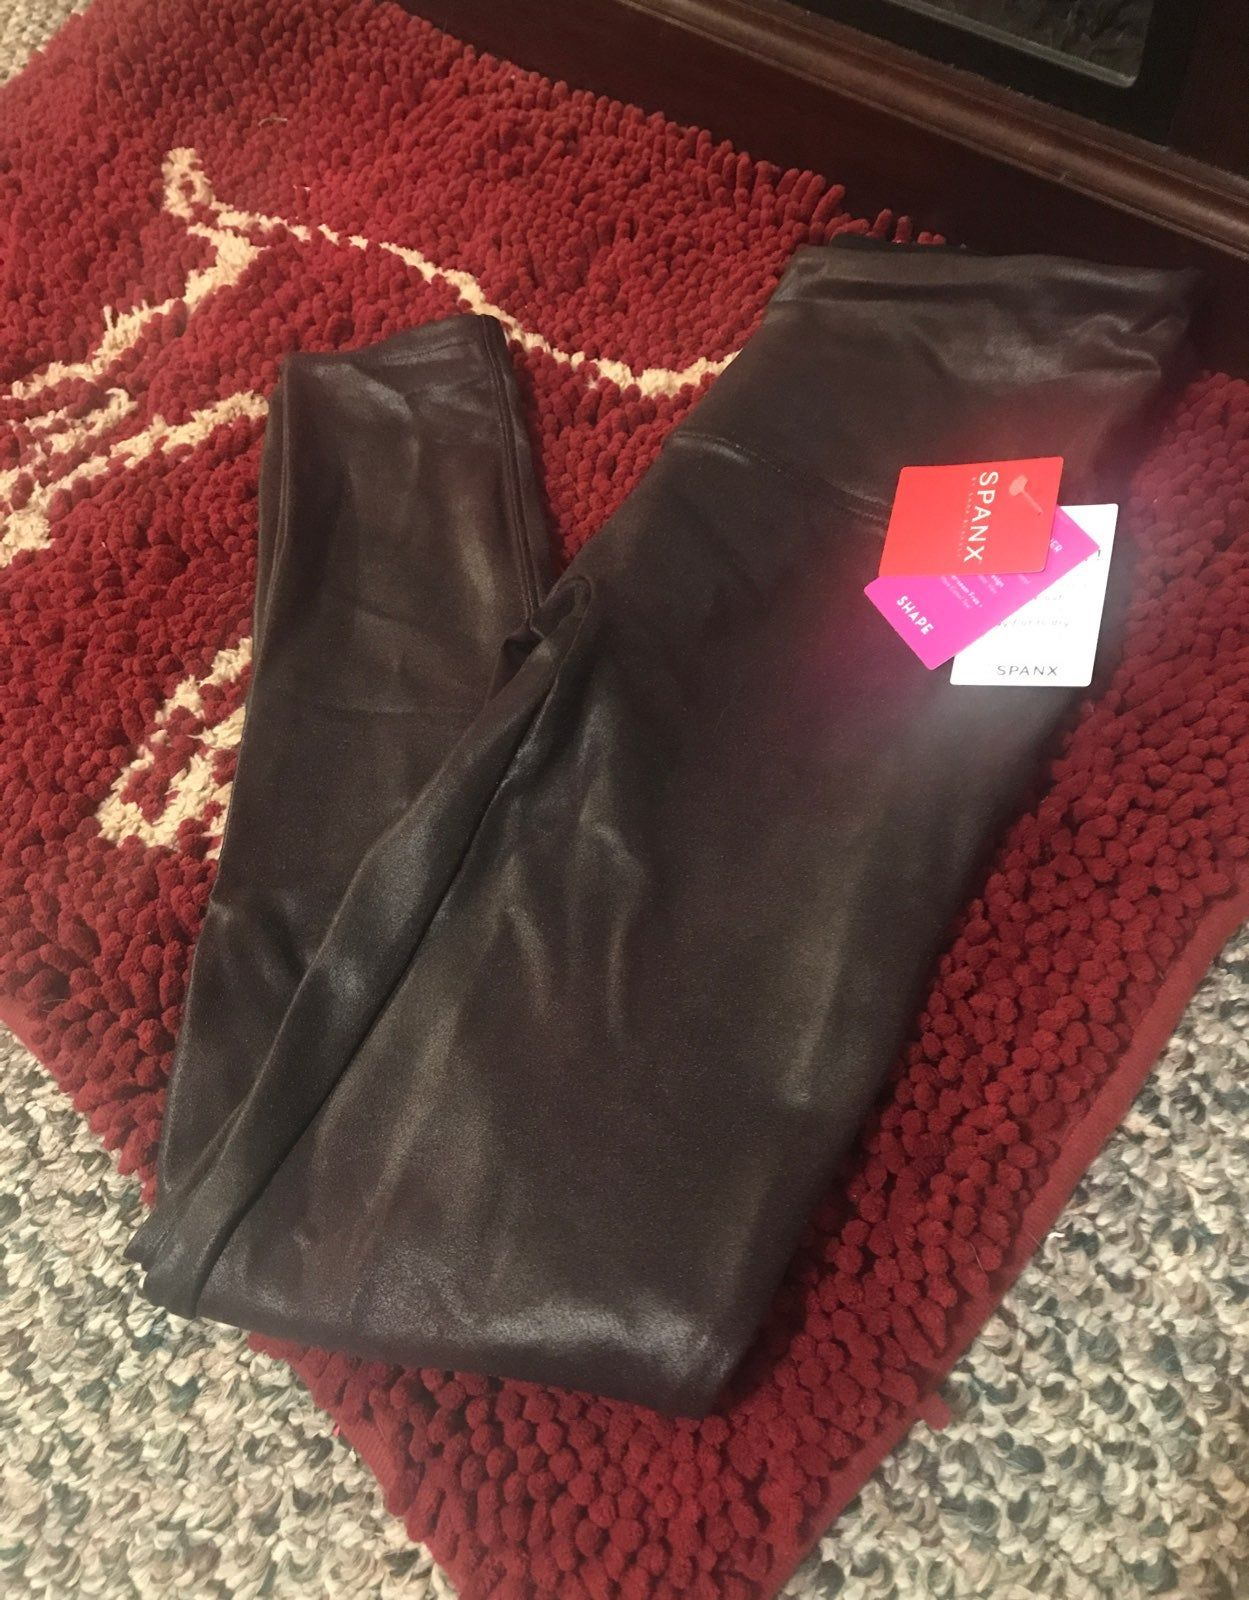 In Brand New Condition Never Worn Paid 98 Ordered Wrong Size These Are A Dark Wine Color Sup Spanx Faux Leather Leggings Faux Leather Leggings Leather Leggings